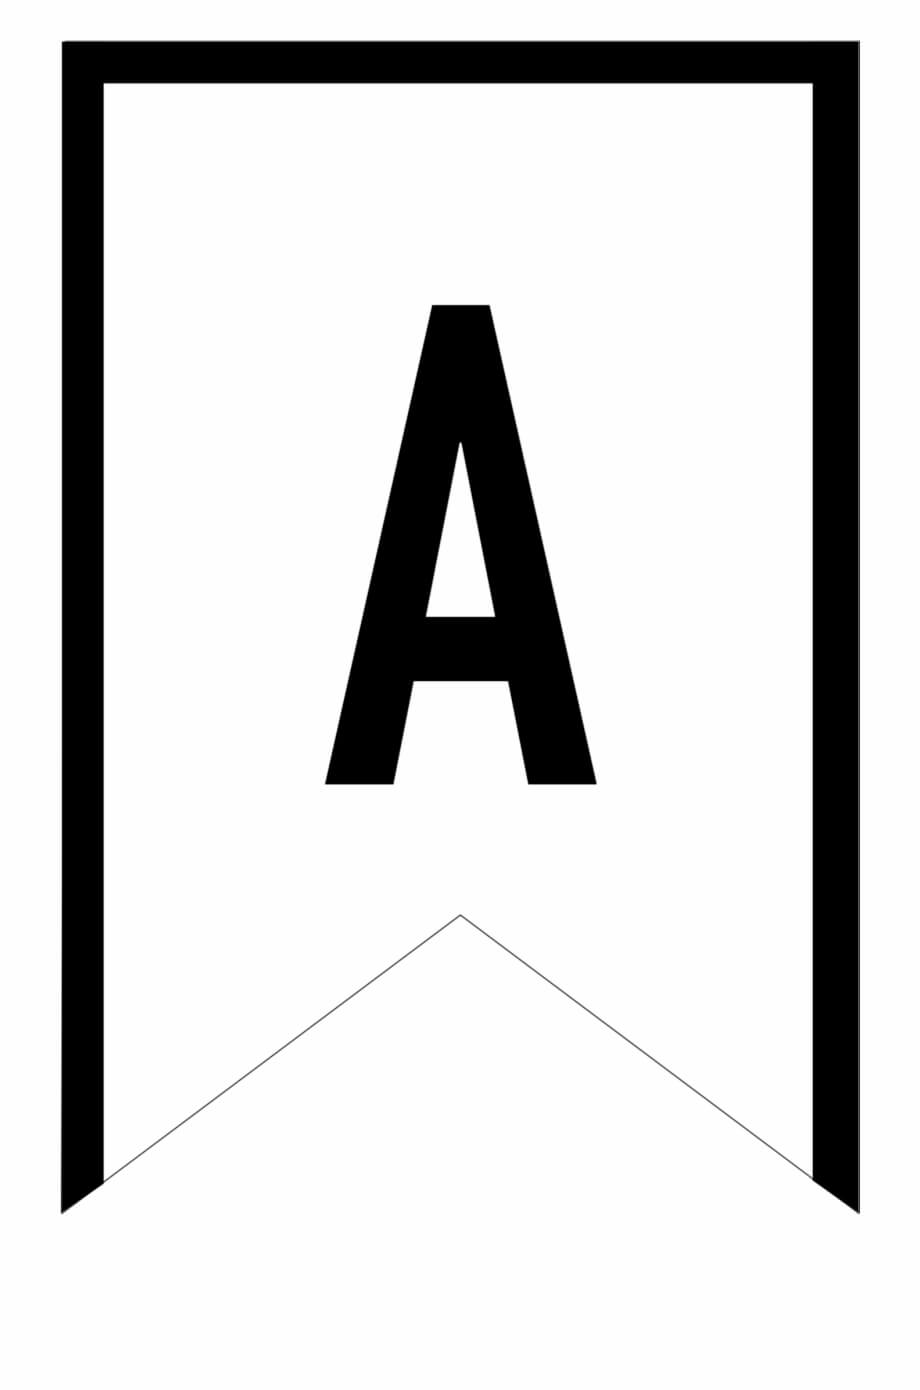 Banner Templates Free Printable Abc Letters - Printable inside Printable Banners Templates Free